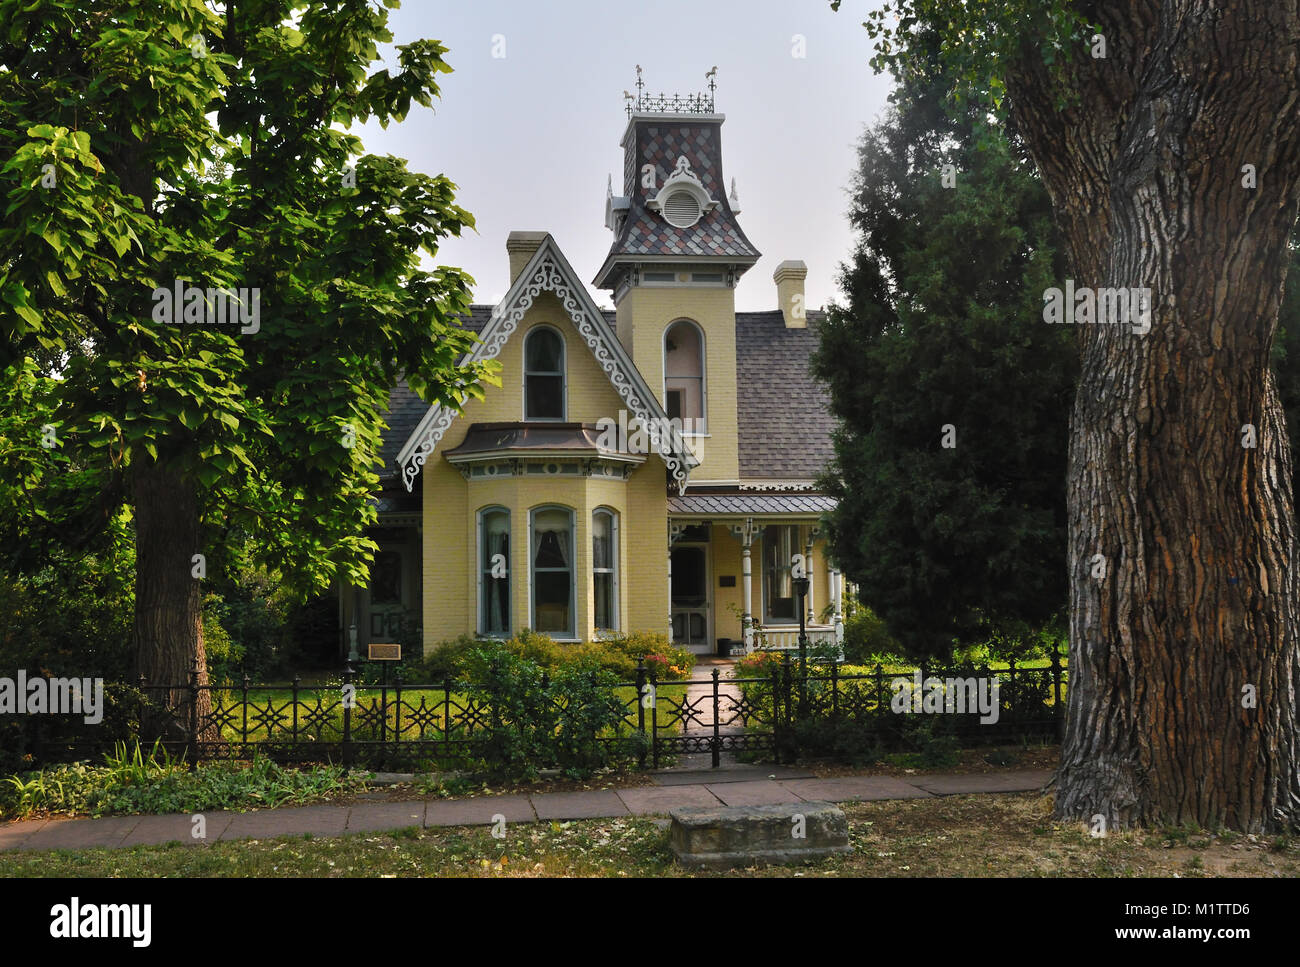 Built in 1877, the Arnett-Fullen house,  640  Pearl St., is said to be haunted. It is on the National Register, - Stock Image